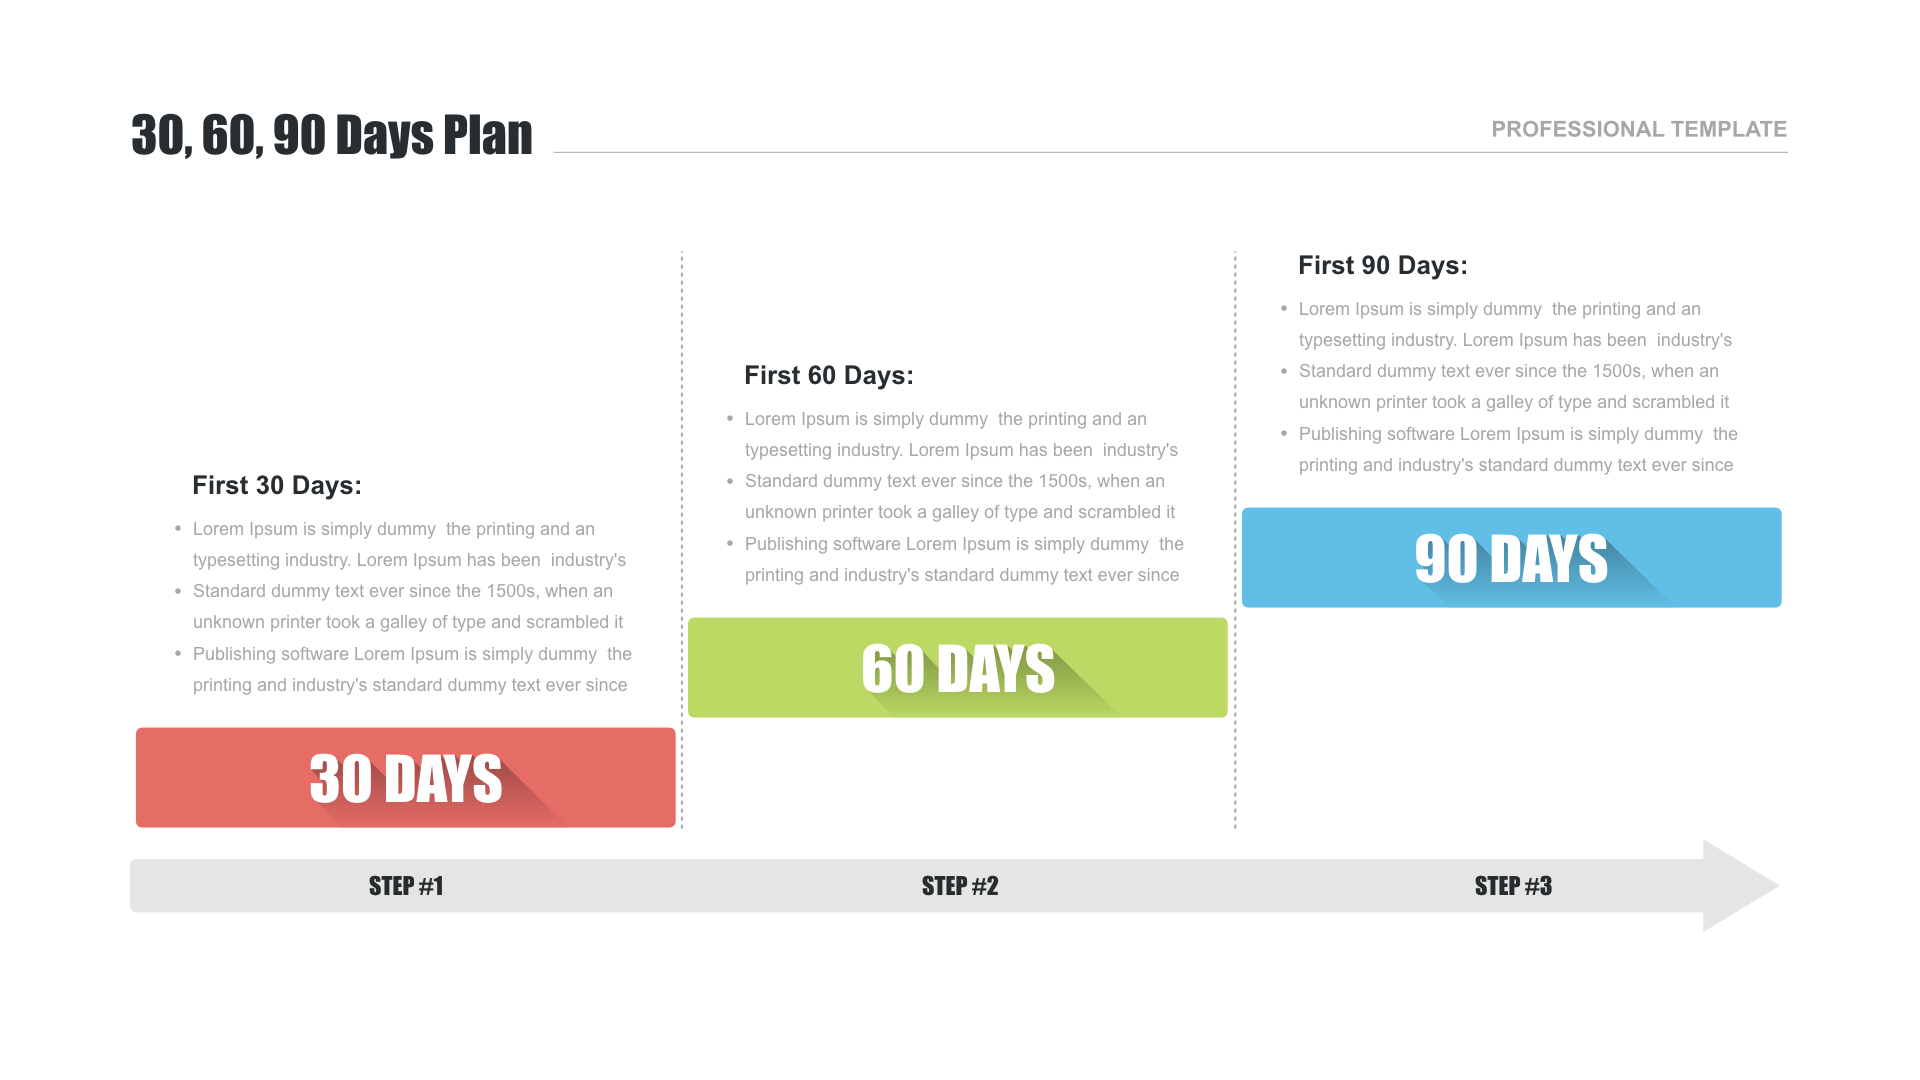 30 60 90 Day Plan Template For Google Slides – Free Download Throughout 30 60 90 Day Plan Template Powerpoint